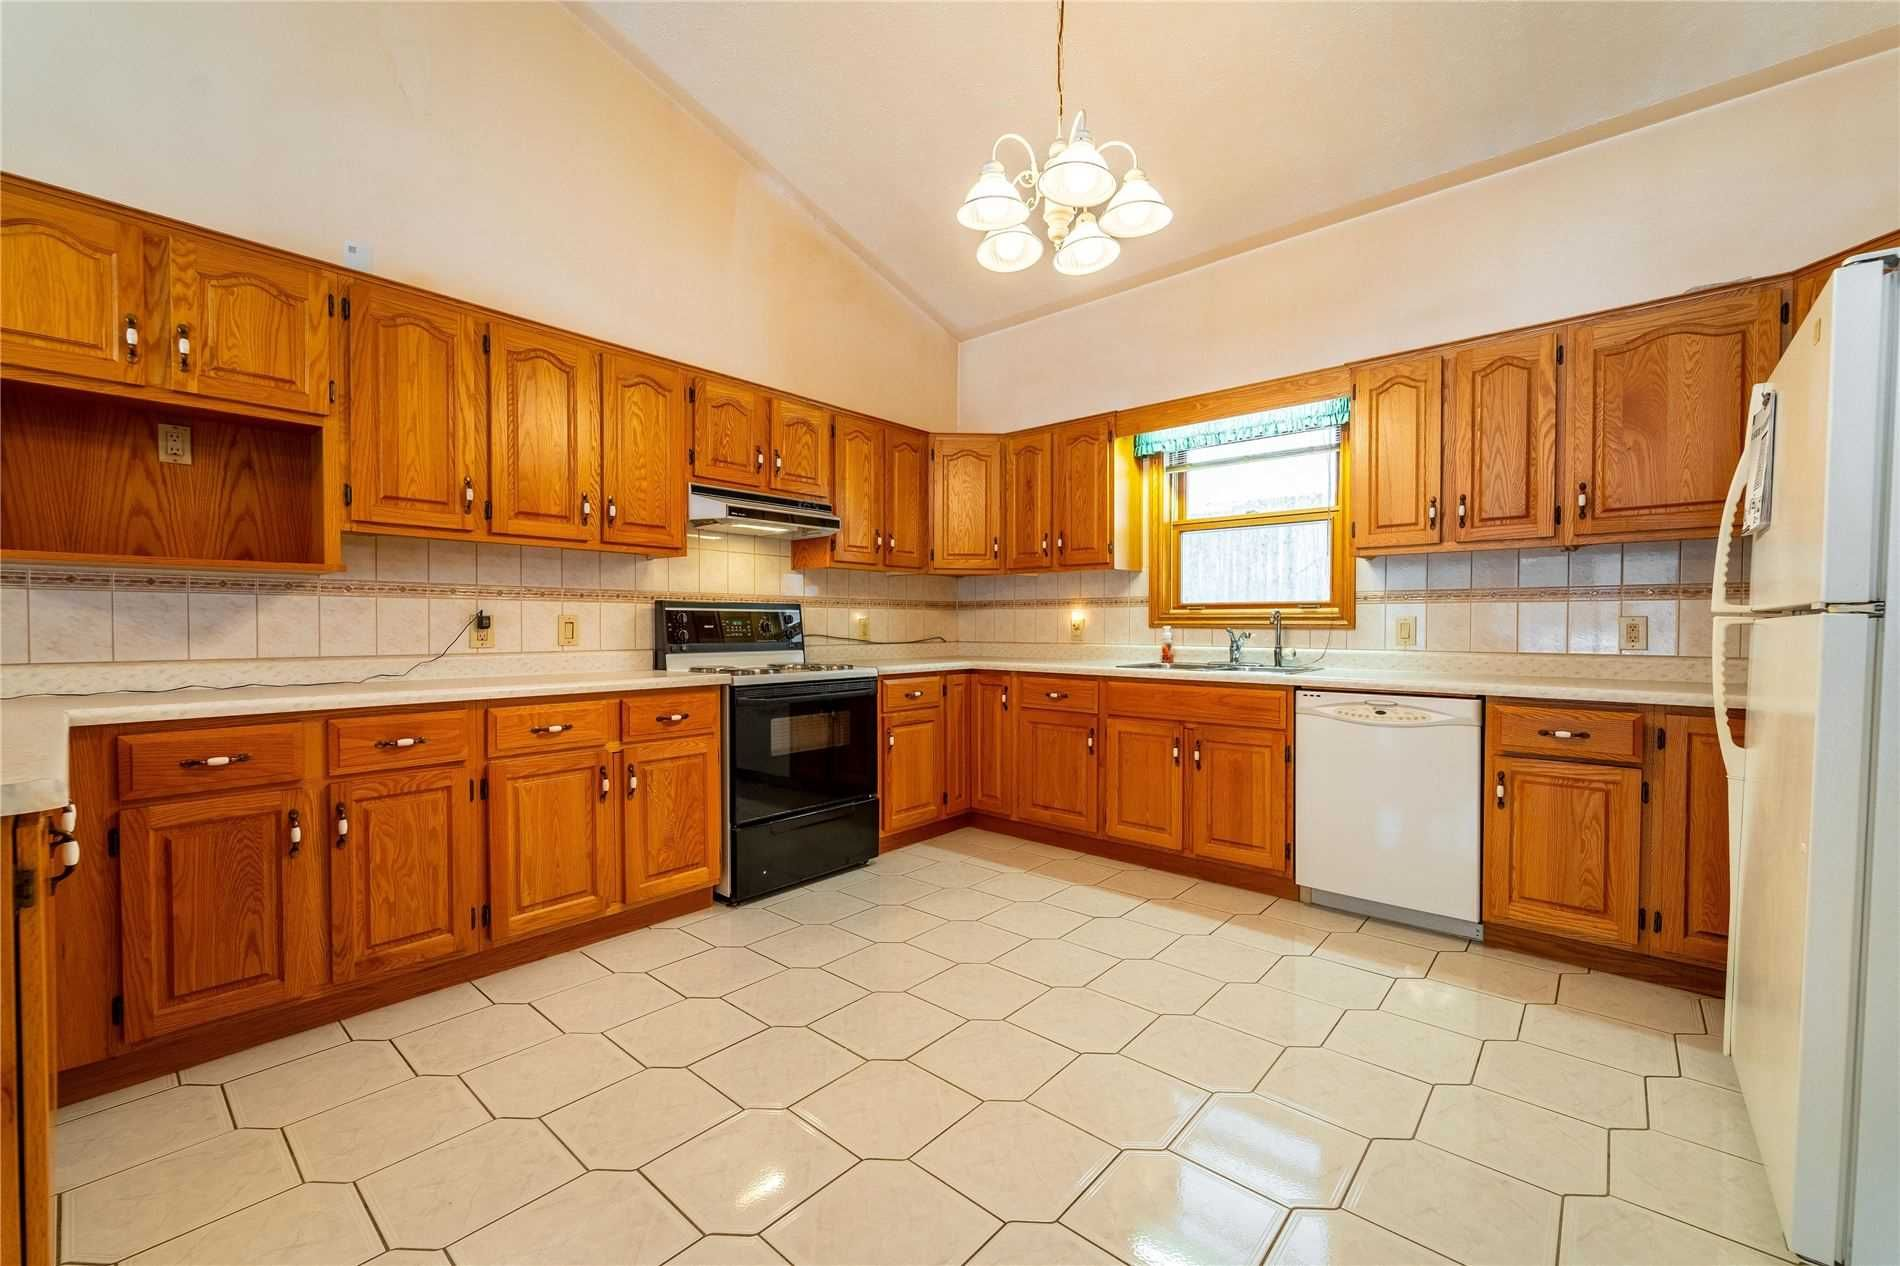 Photo 9: Photos: 918 Windham12 Road in Norfolk: Simcoe House (Bungalow) for sale : MLS®# X4707719